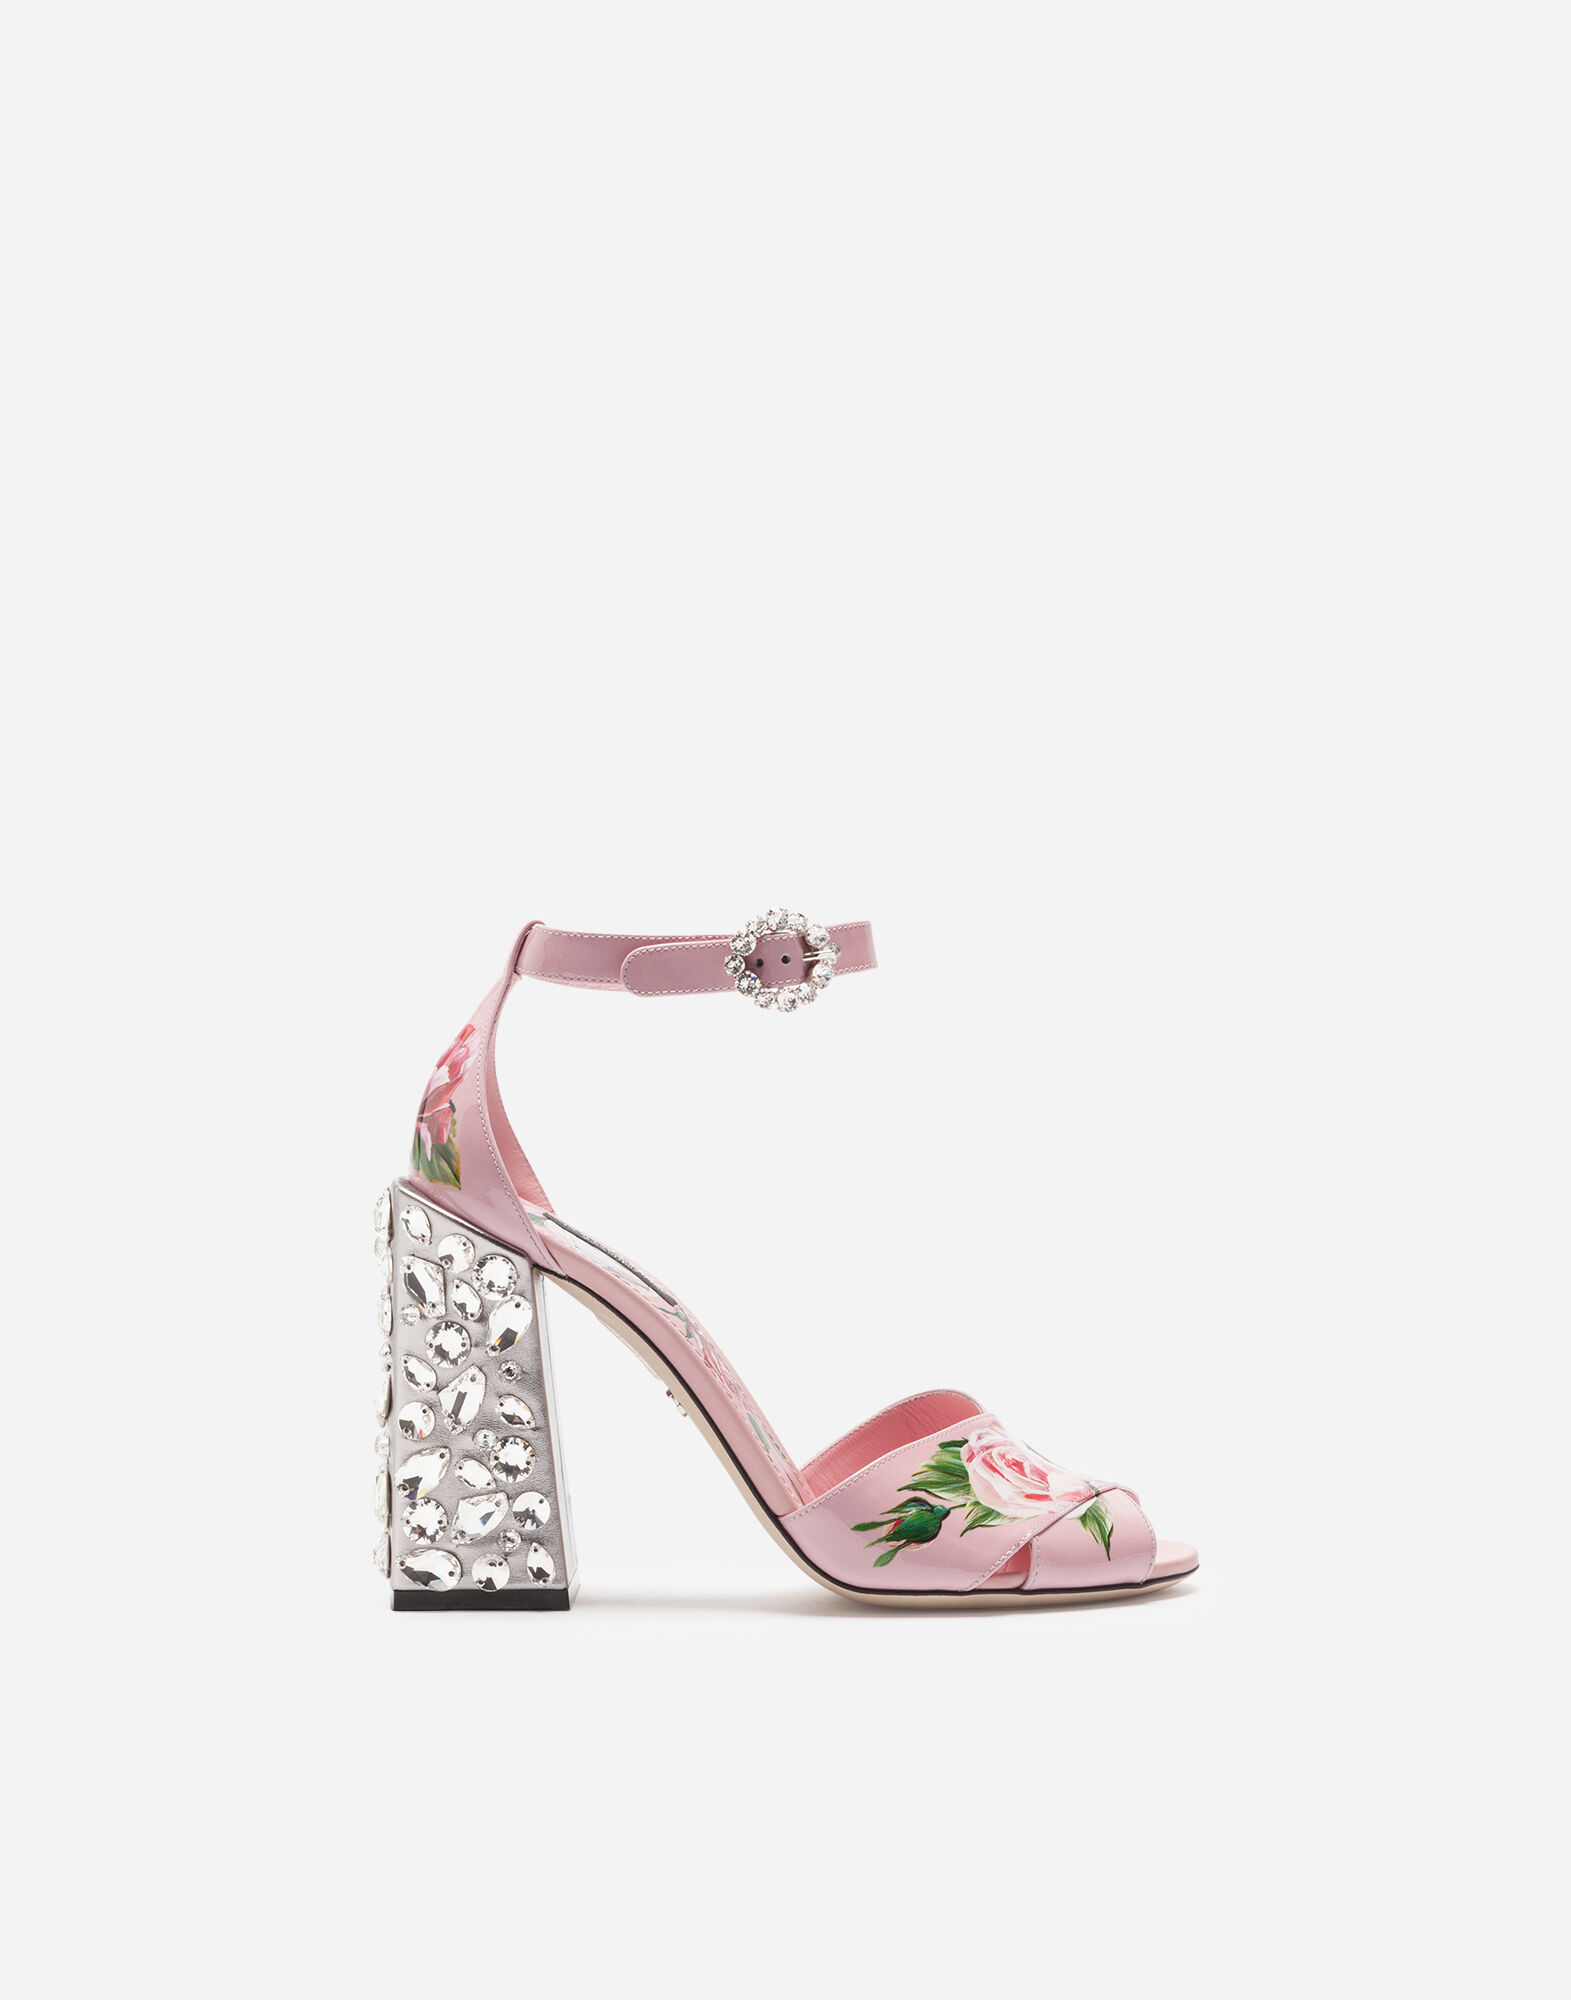 PATENT PATENT Women's Dolce Collection PRINTED PRINTED amp;Gabbana New Sandals x7qYg7Zp